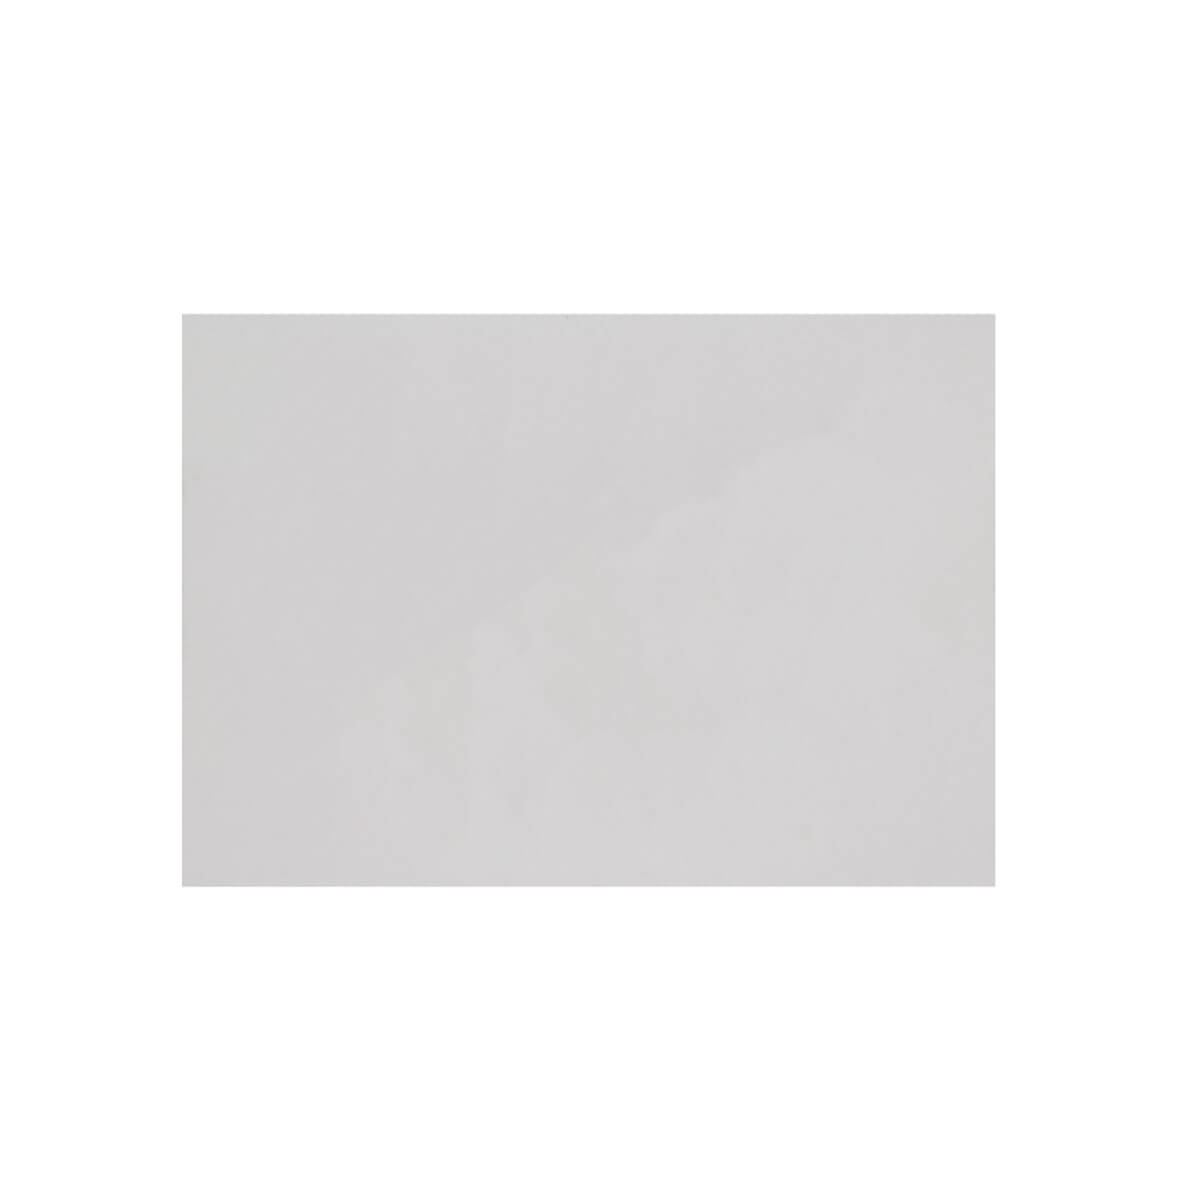 WHITE 70 x 100mm GIFT TAG ENVELOPE 100GSM (BOX OF 1000)